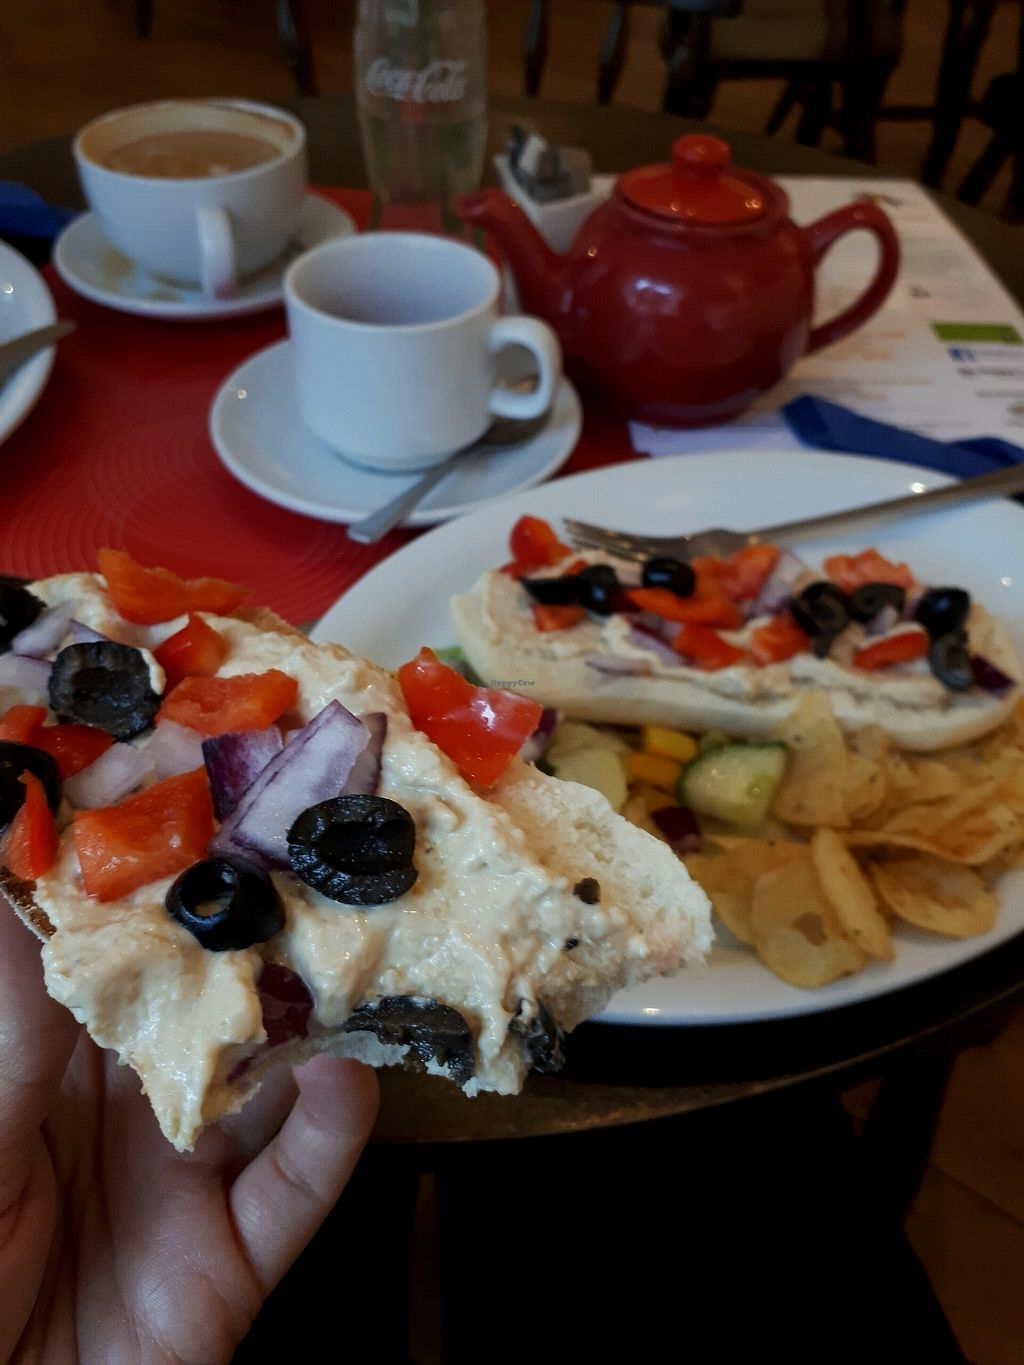 """Photo of The Art Cafe  by <a href=""""/members/profile/Tomma"""">Tomma</a> <br/>Houmous baguette <br/> October 30, 2017  - <a href='/contact/abuse/image/57604/320043'>Report</a>"""